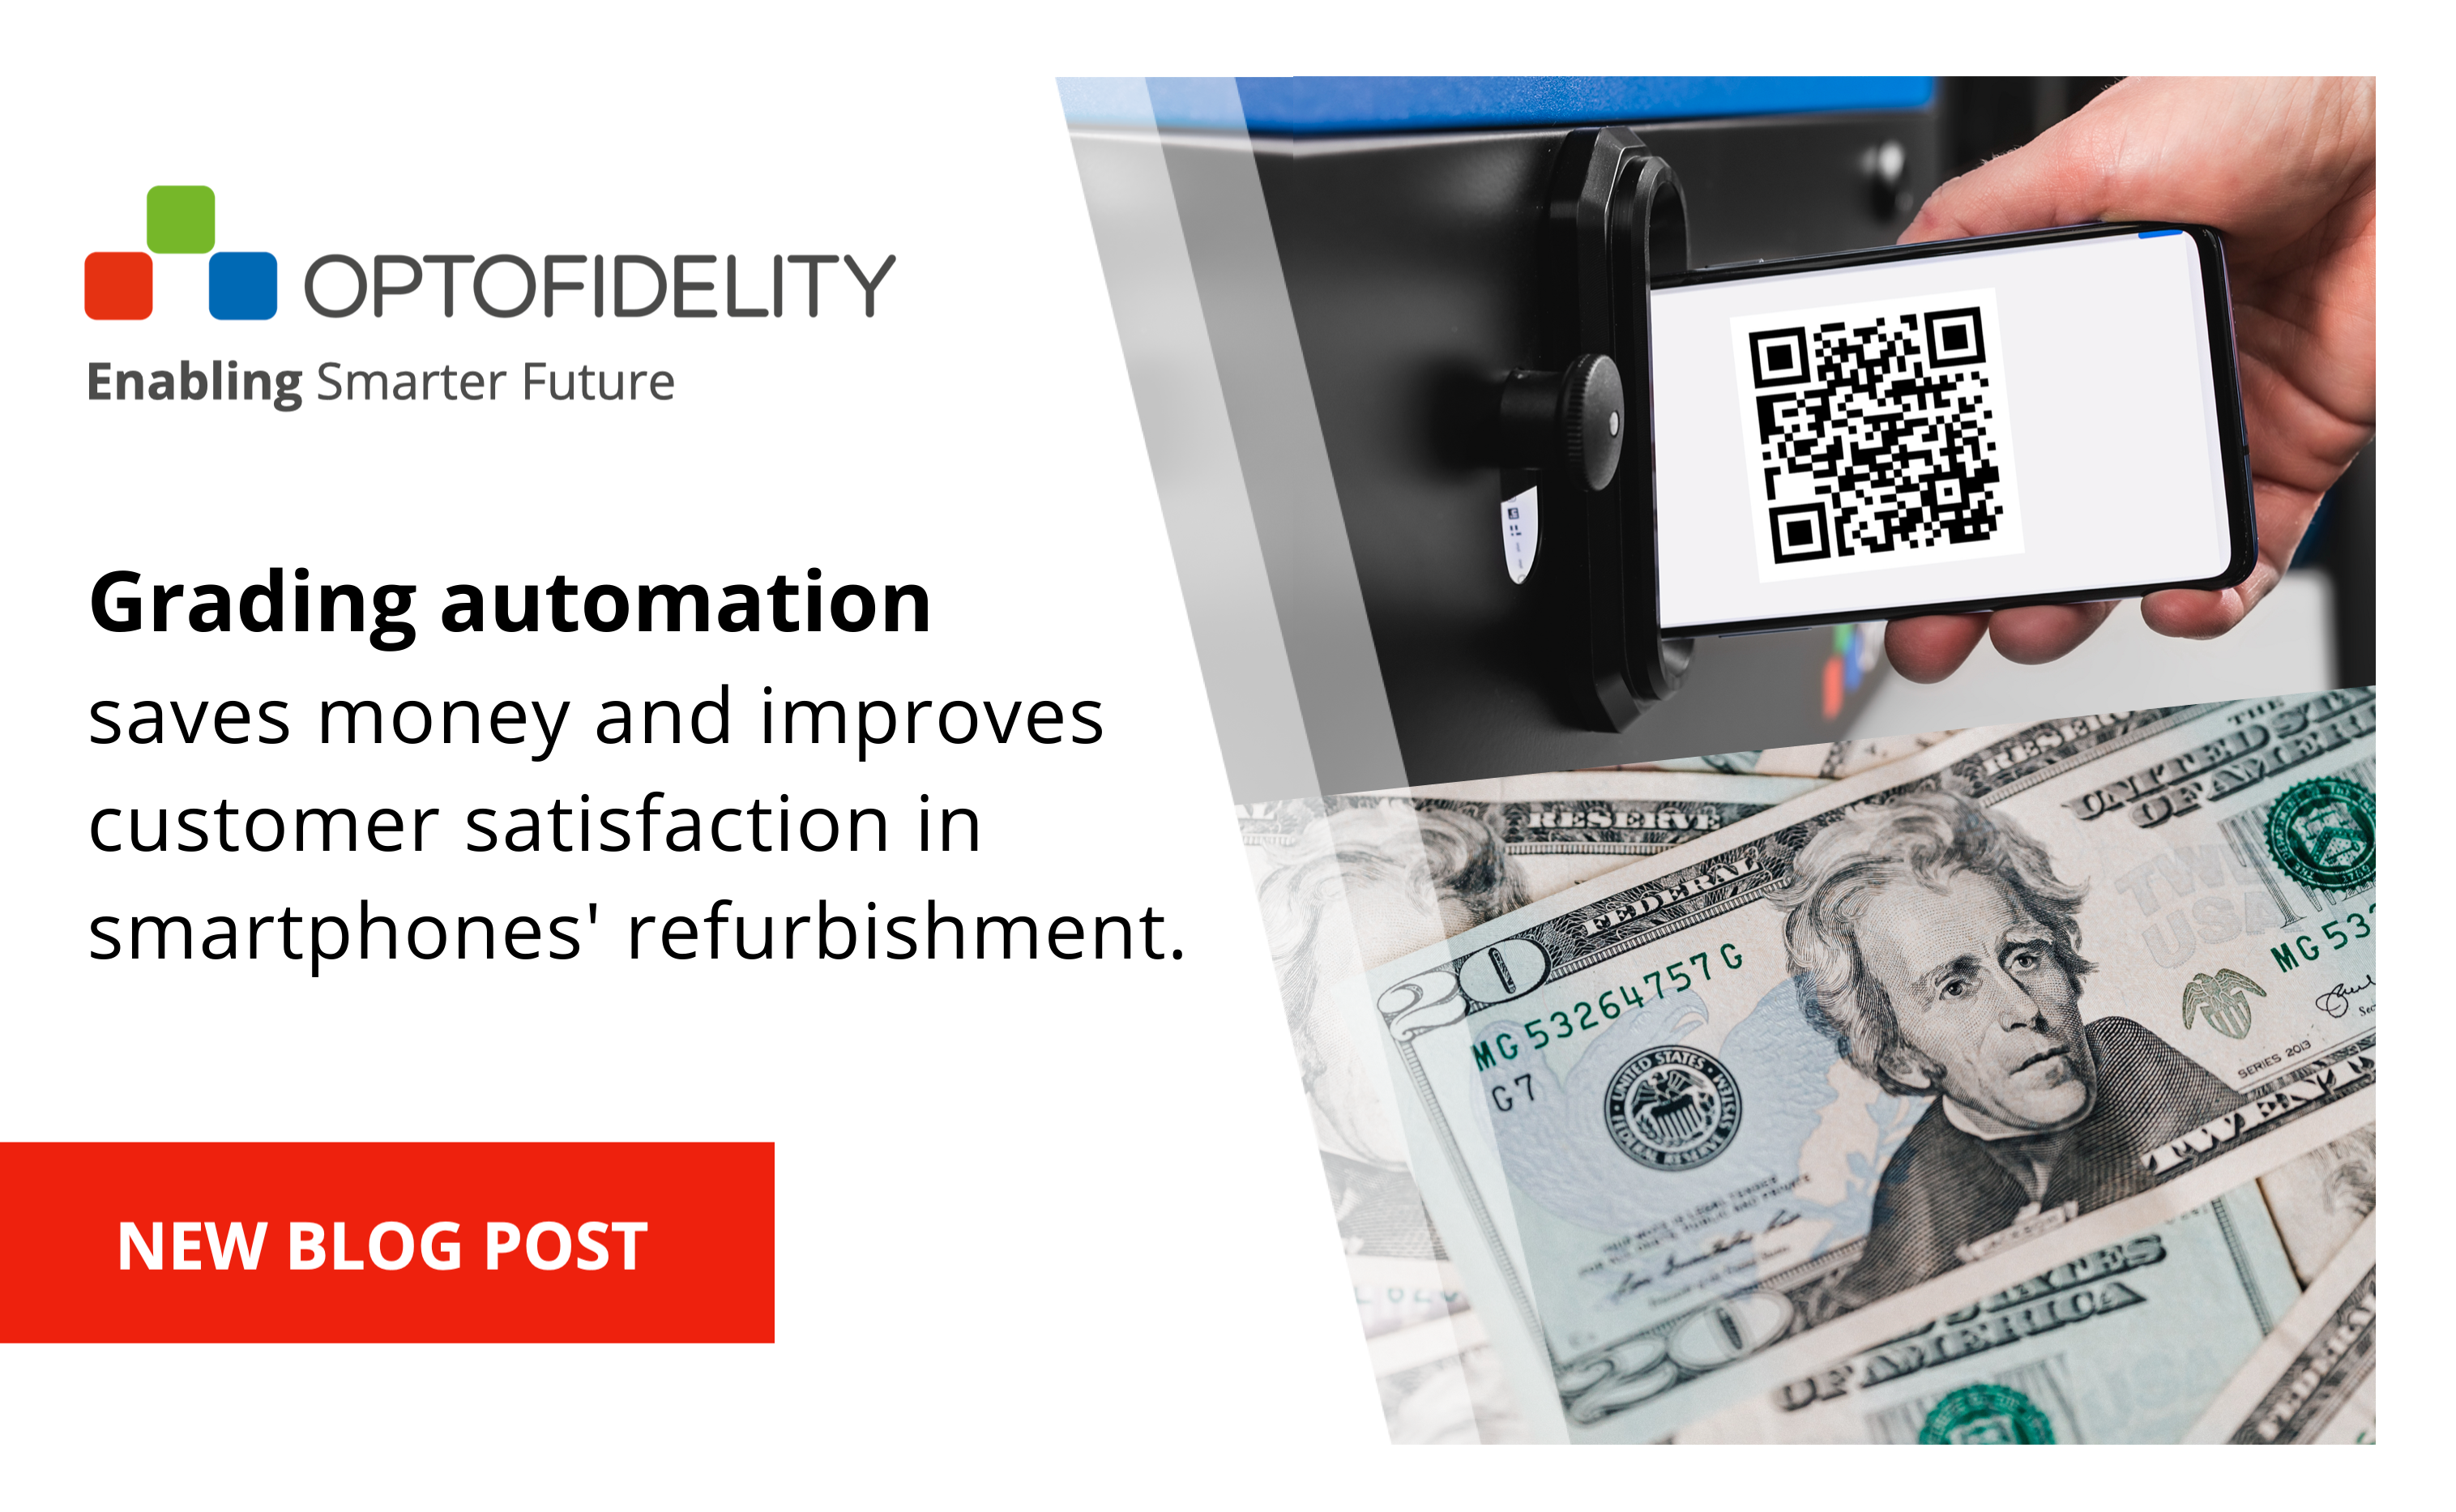 https://f.hubspotusercontent10.net/hubfs/6347010/Grading%20automation%20saves%20money%20and%20improves%20customer%20satisfaction.png